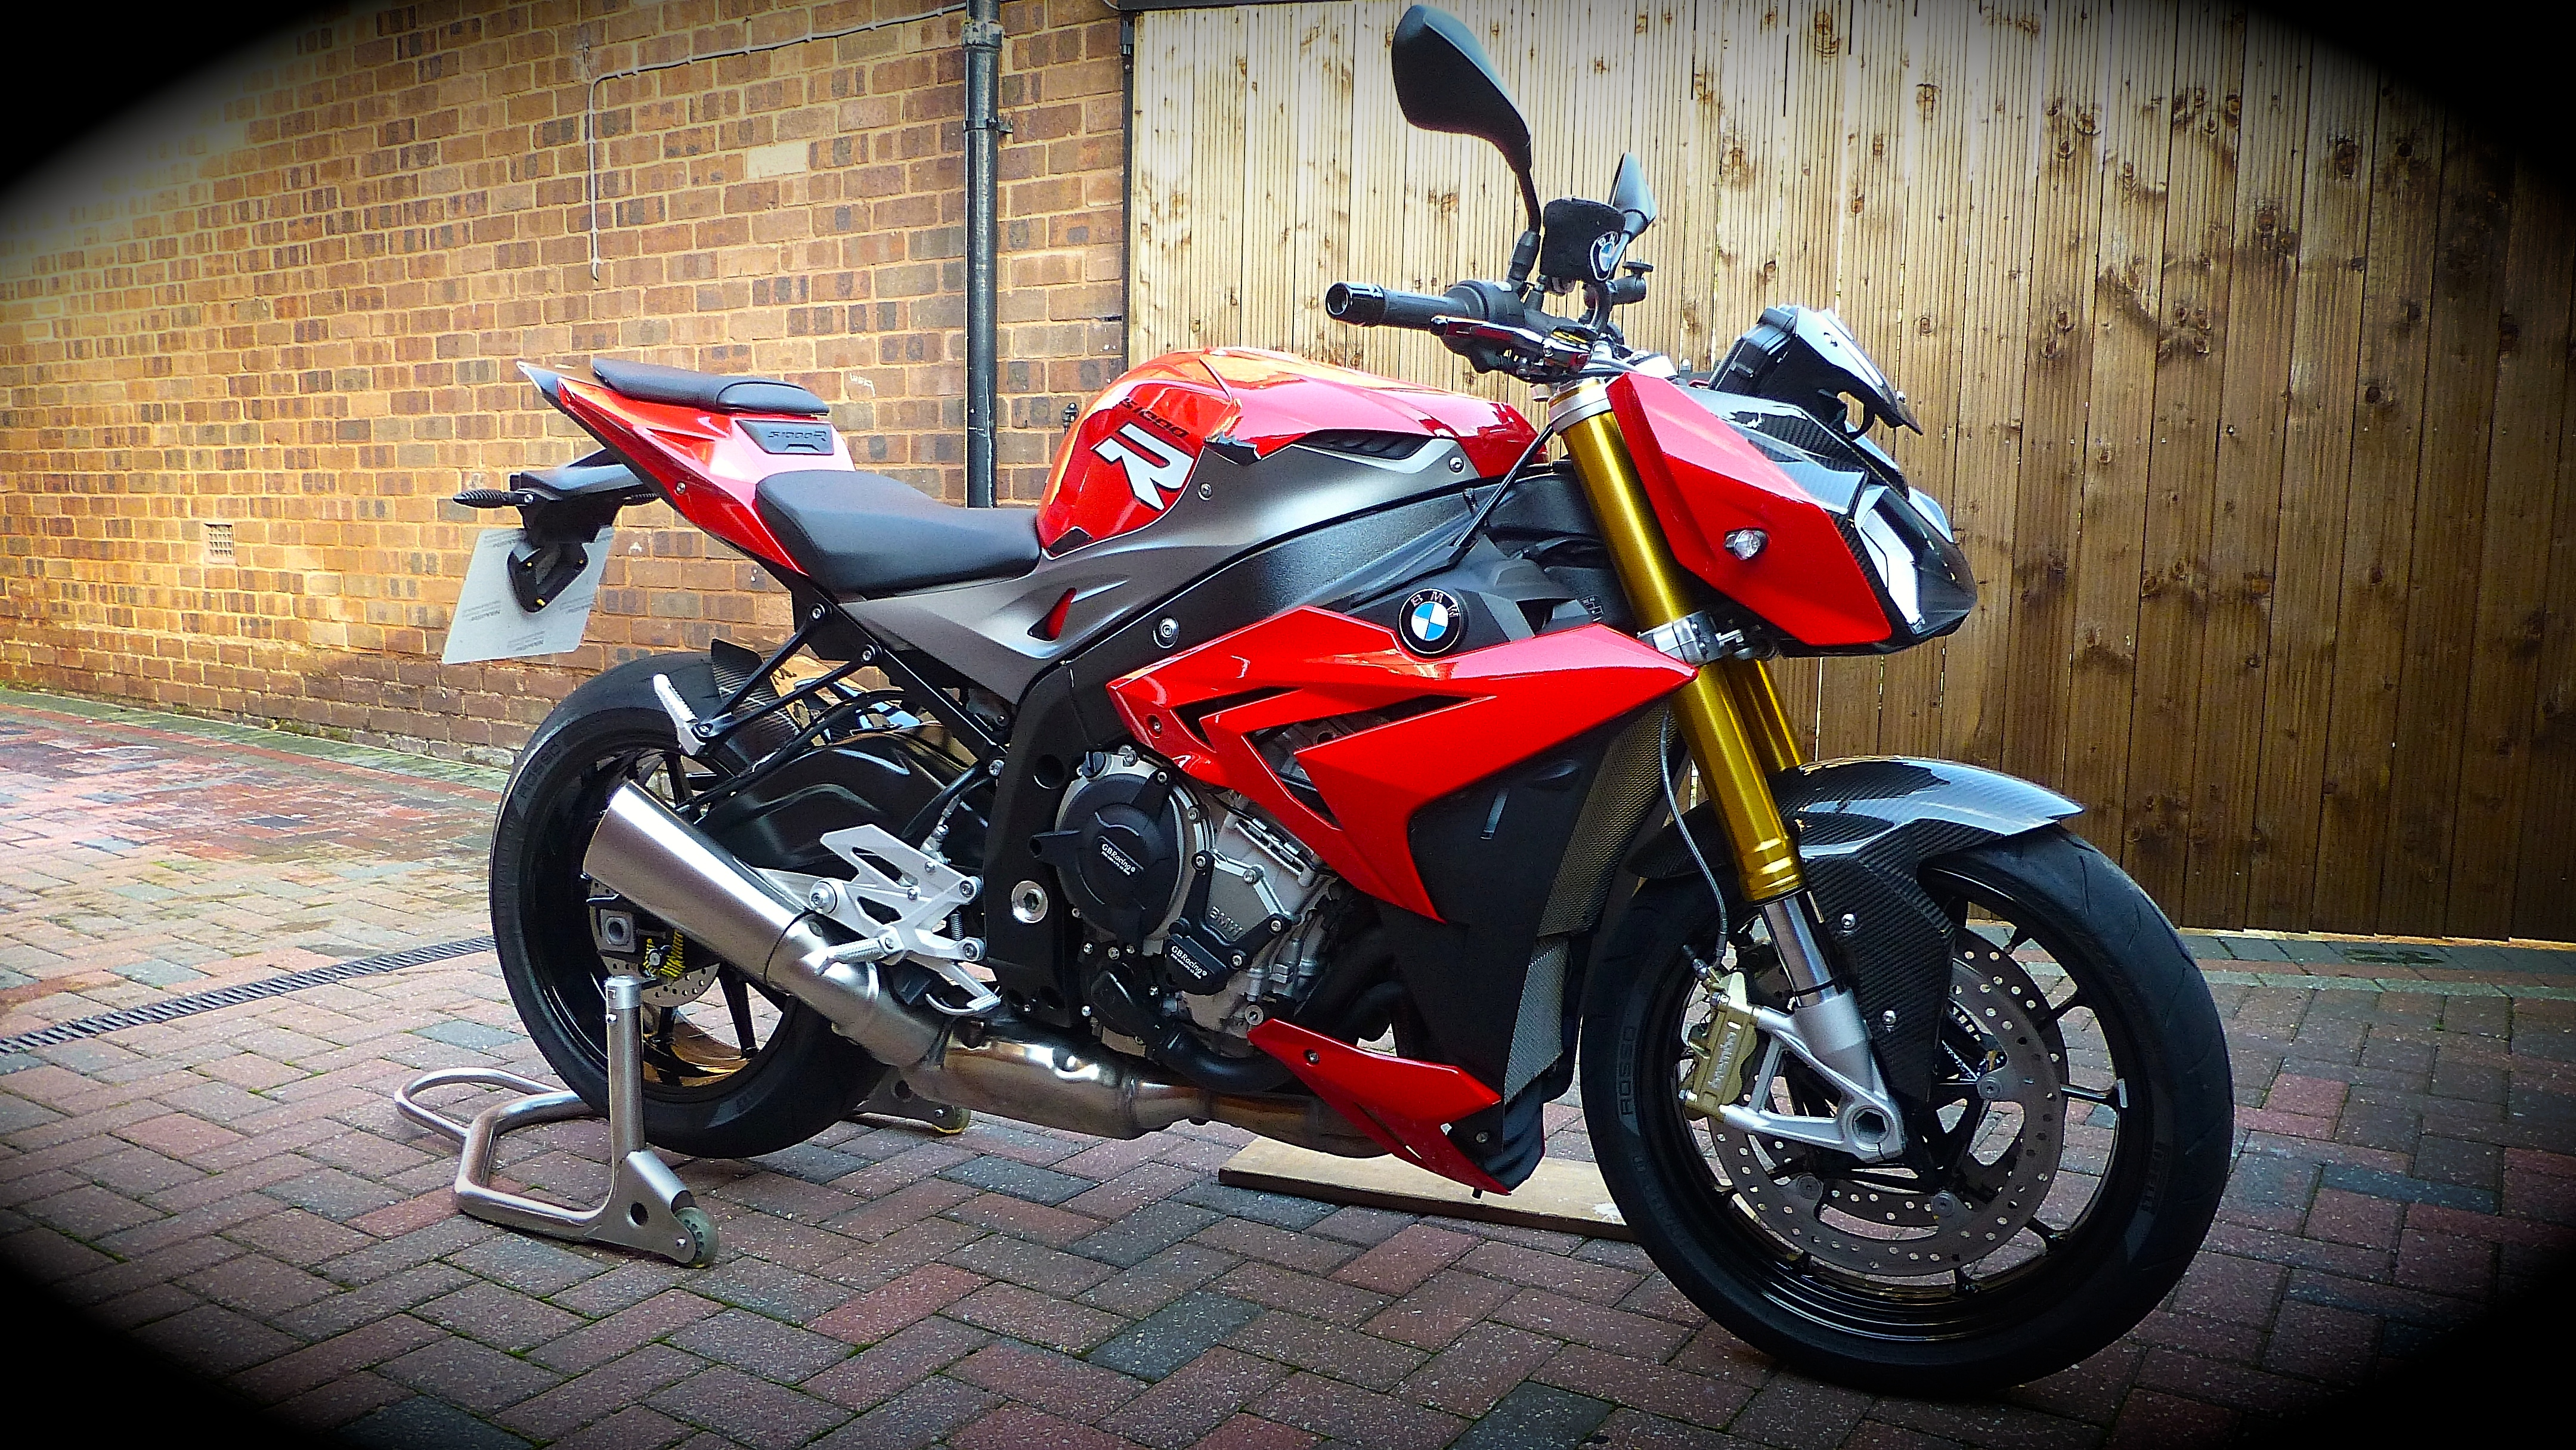 Ken's BMW S1000R Naked with Conquest Carbon parts fitted